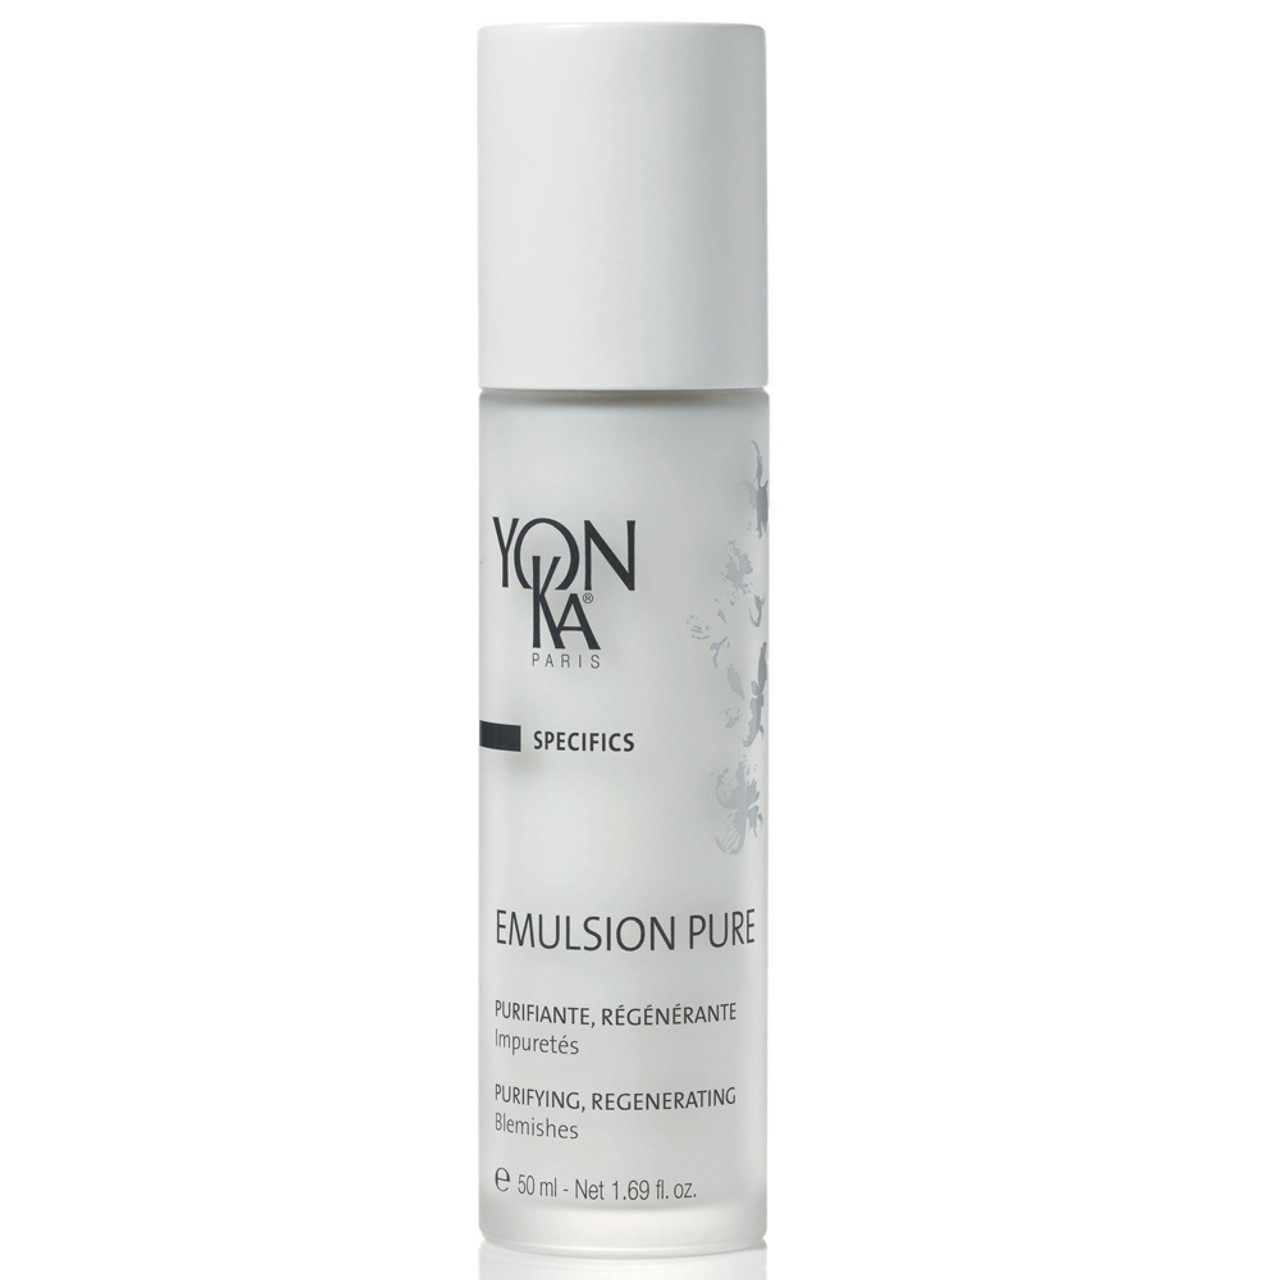 YonKa Emulsion Pure